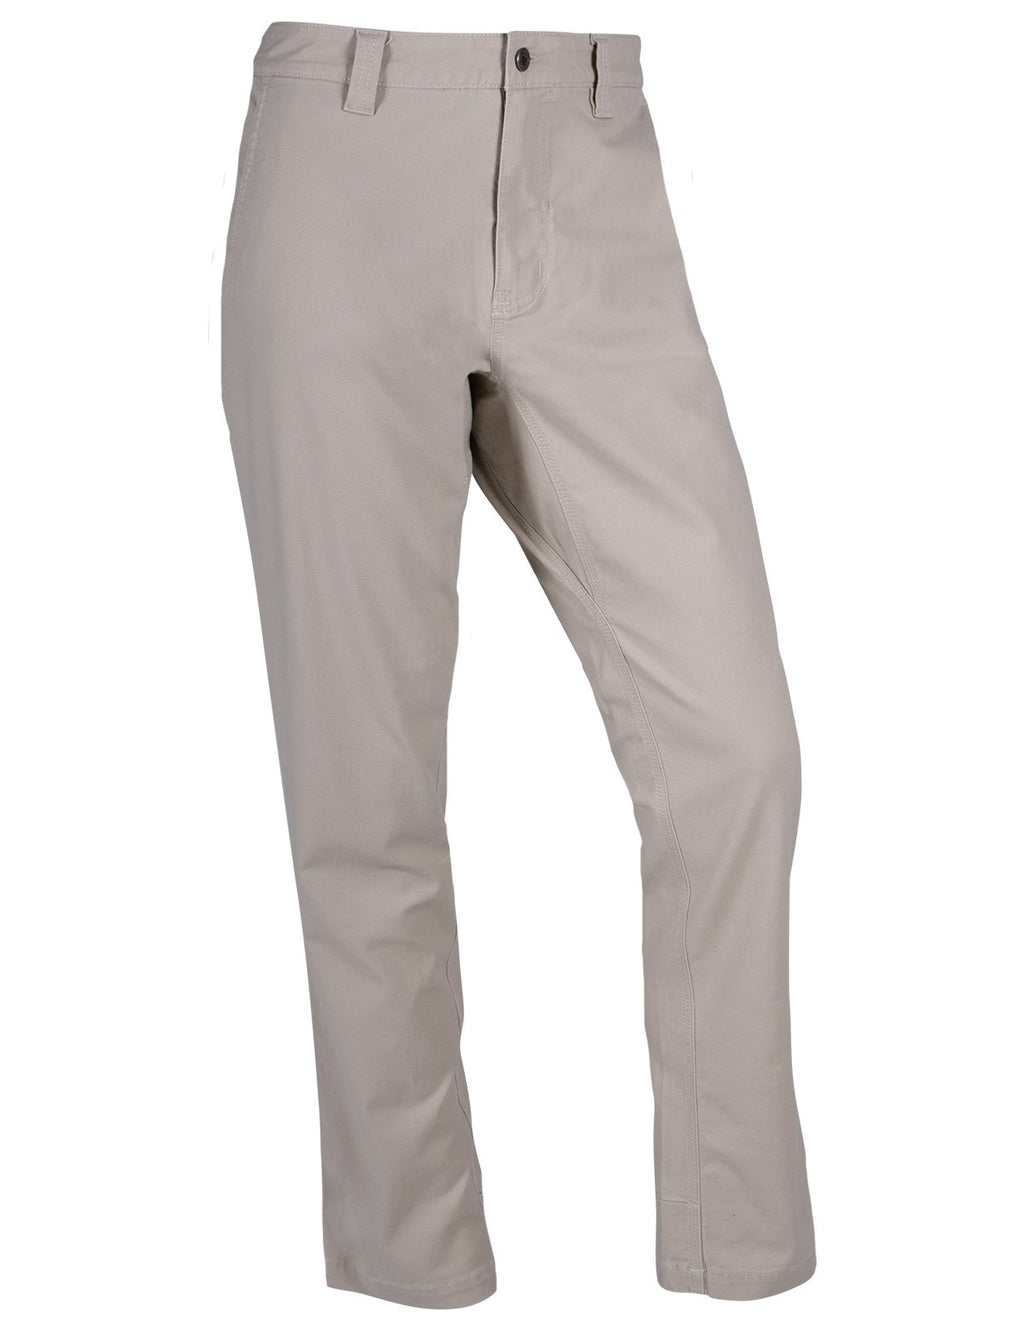 Front-facing silhouette of the All Peak Pant in cream Freestone color.